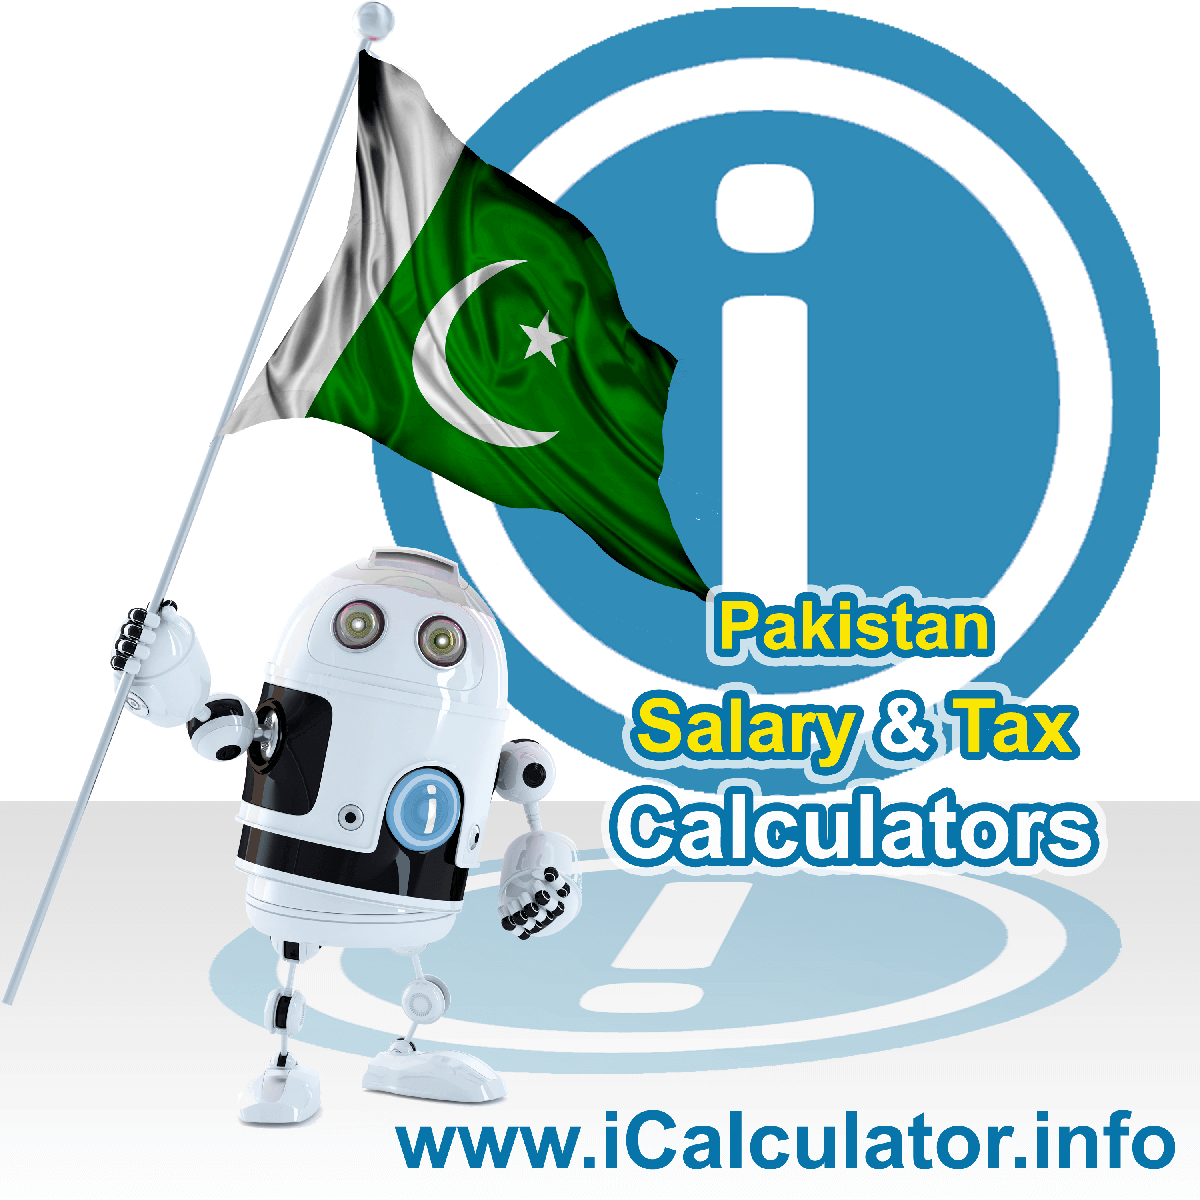 Pakistan Wage Calculator. This image shows the Pakistan flag and information relating to the tax formula for the Pakistan Tax Calculator